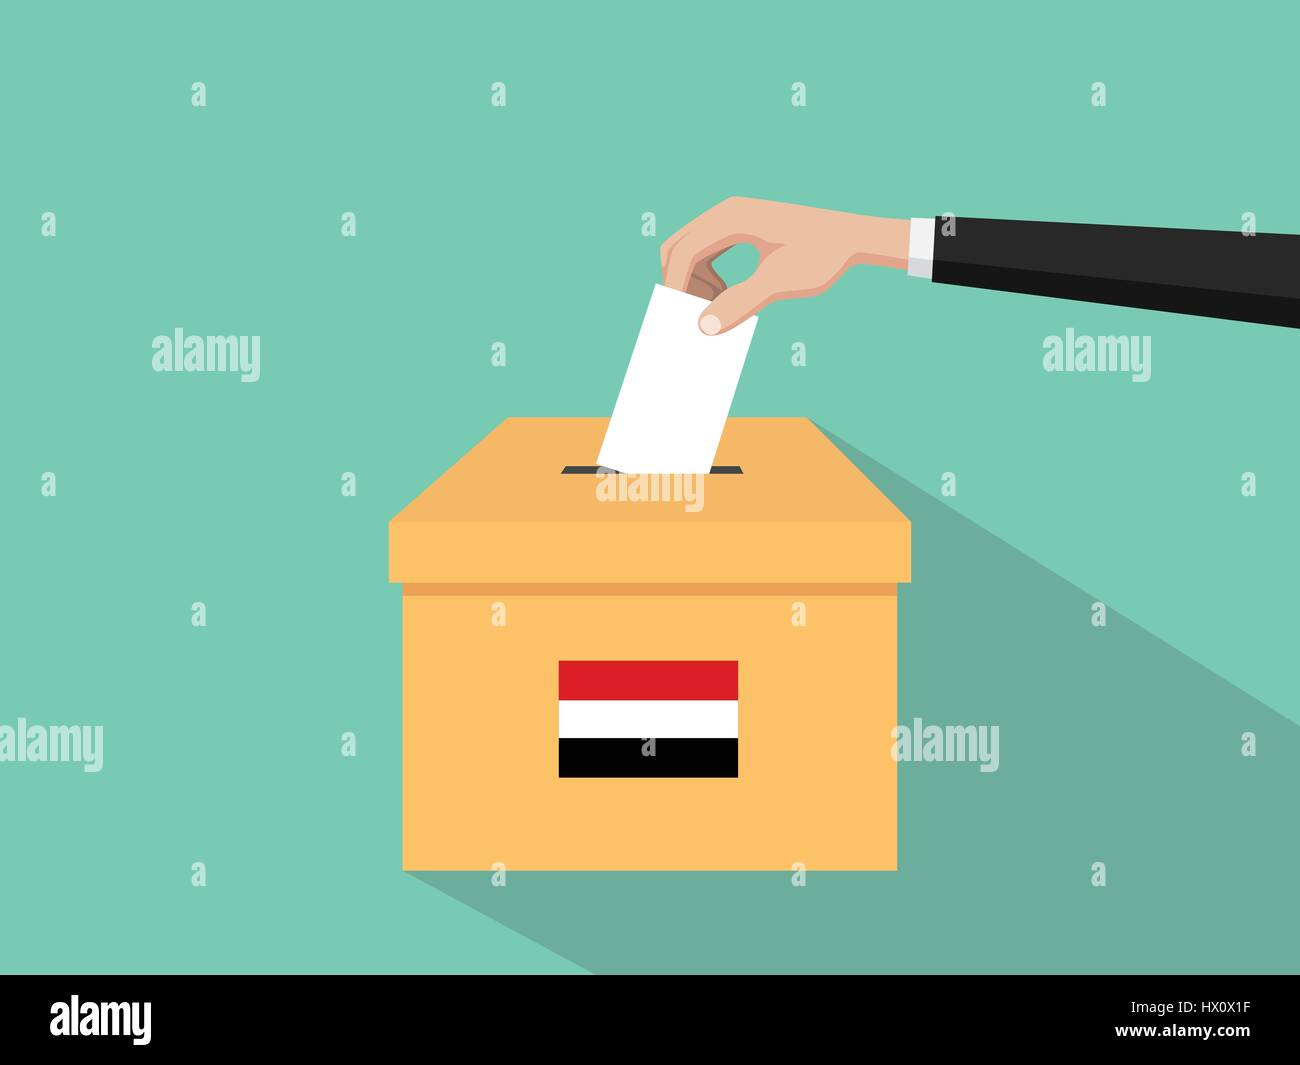 yemen vote election concept illustration with people voter hand gives votes insert to boxes election with long shadow Stock Vector